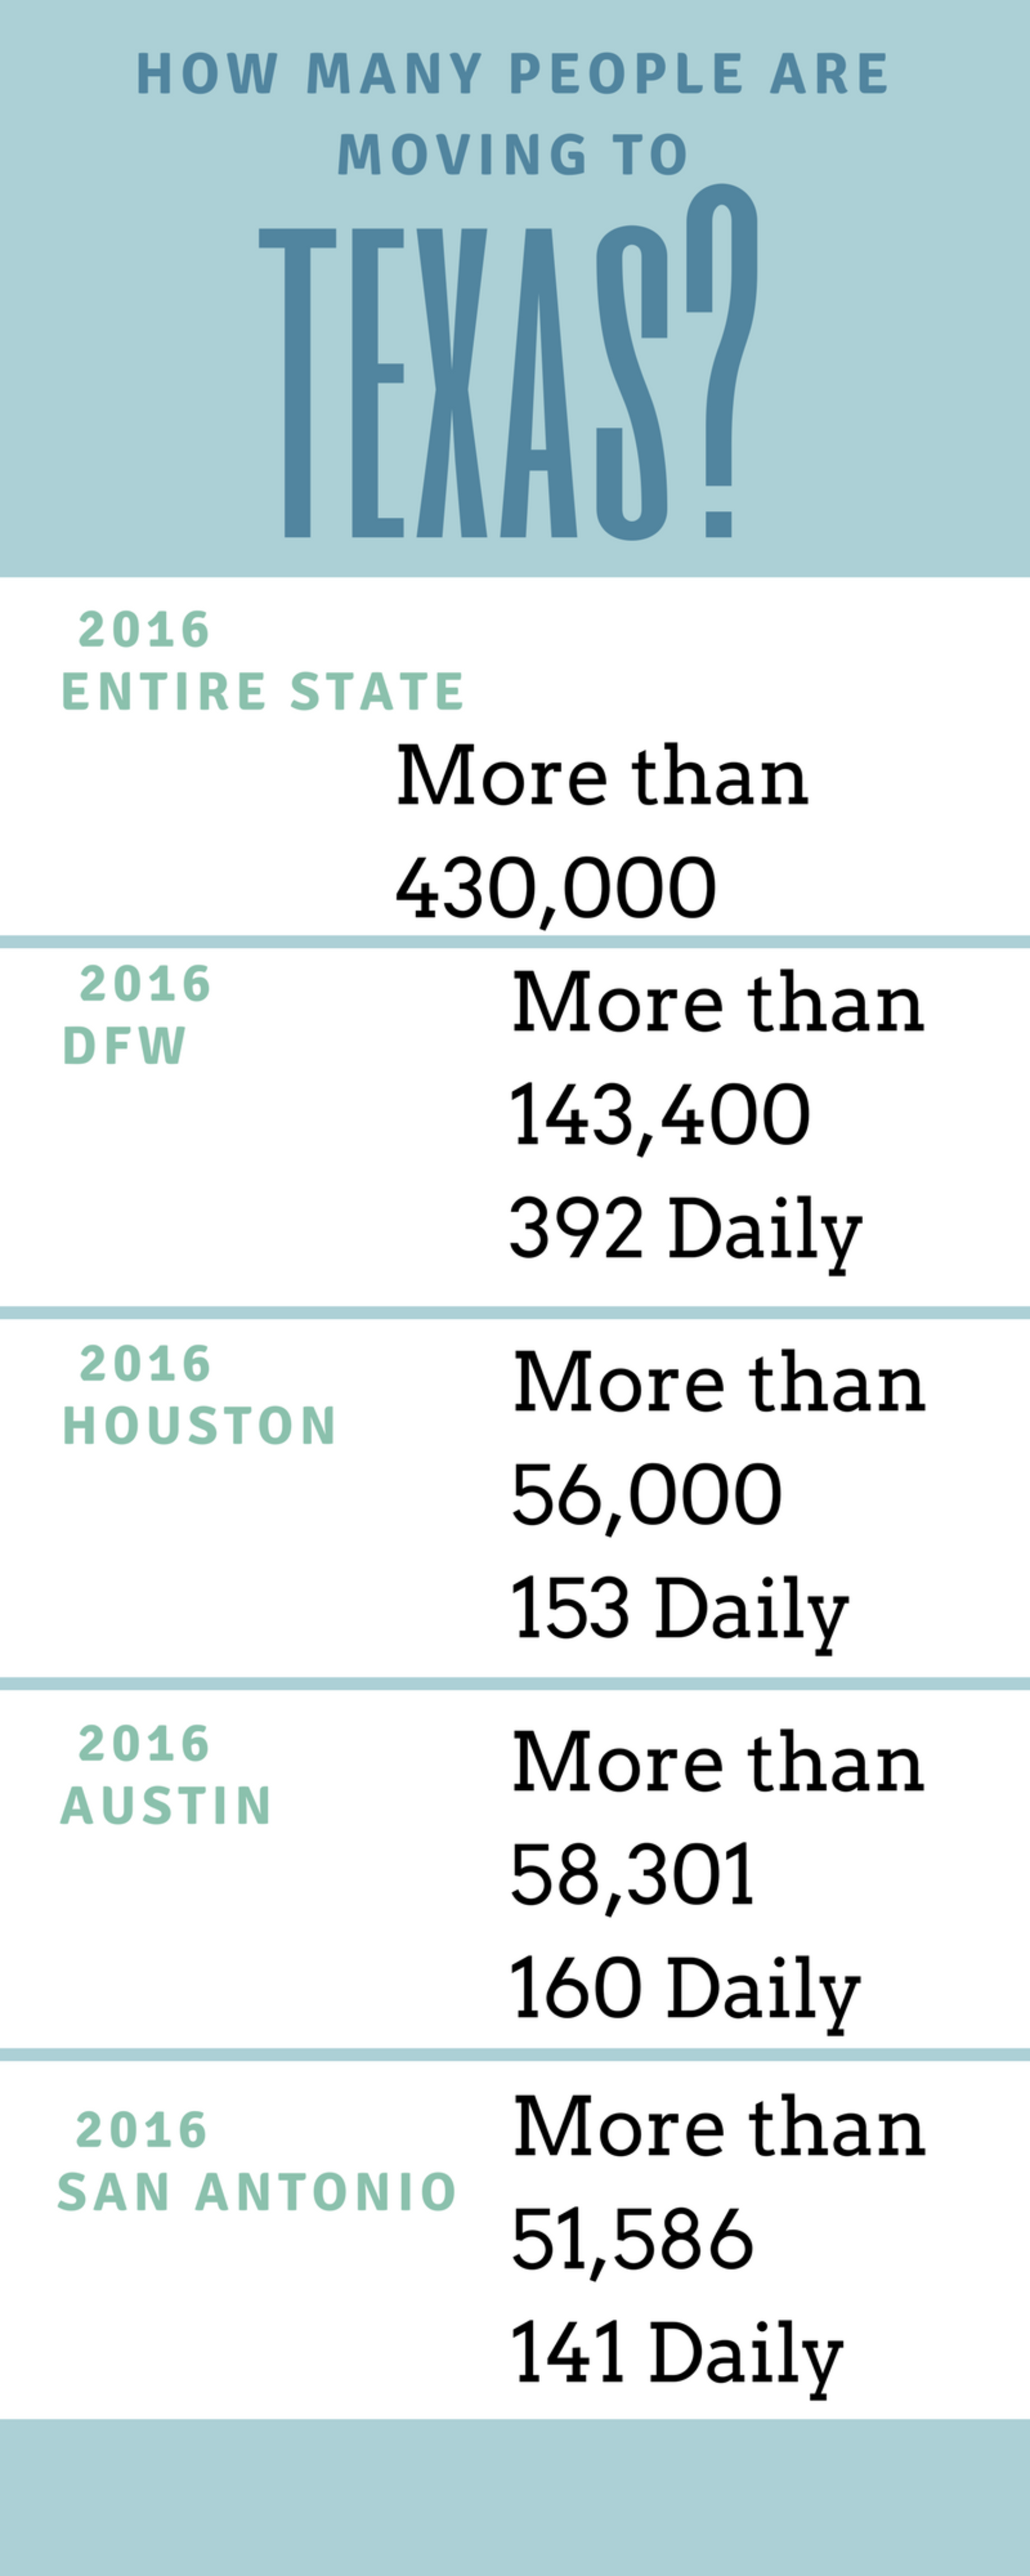 How Many People Move To Texas Daily?